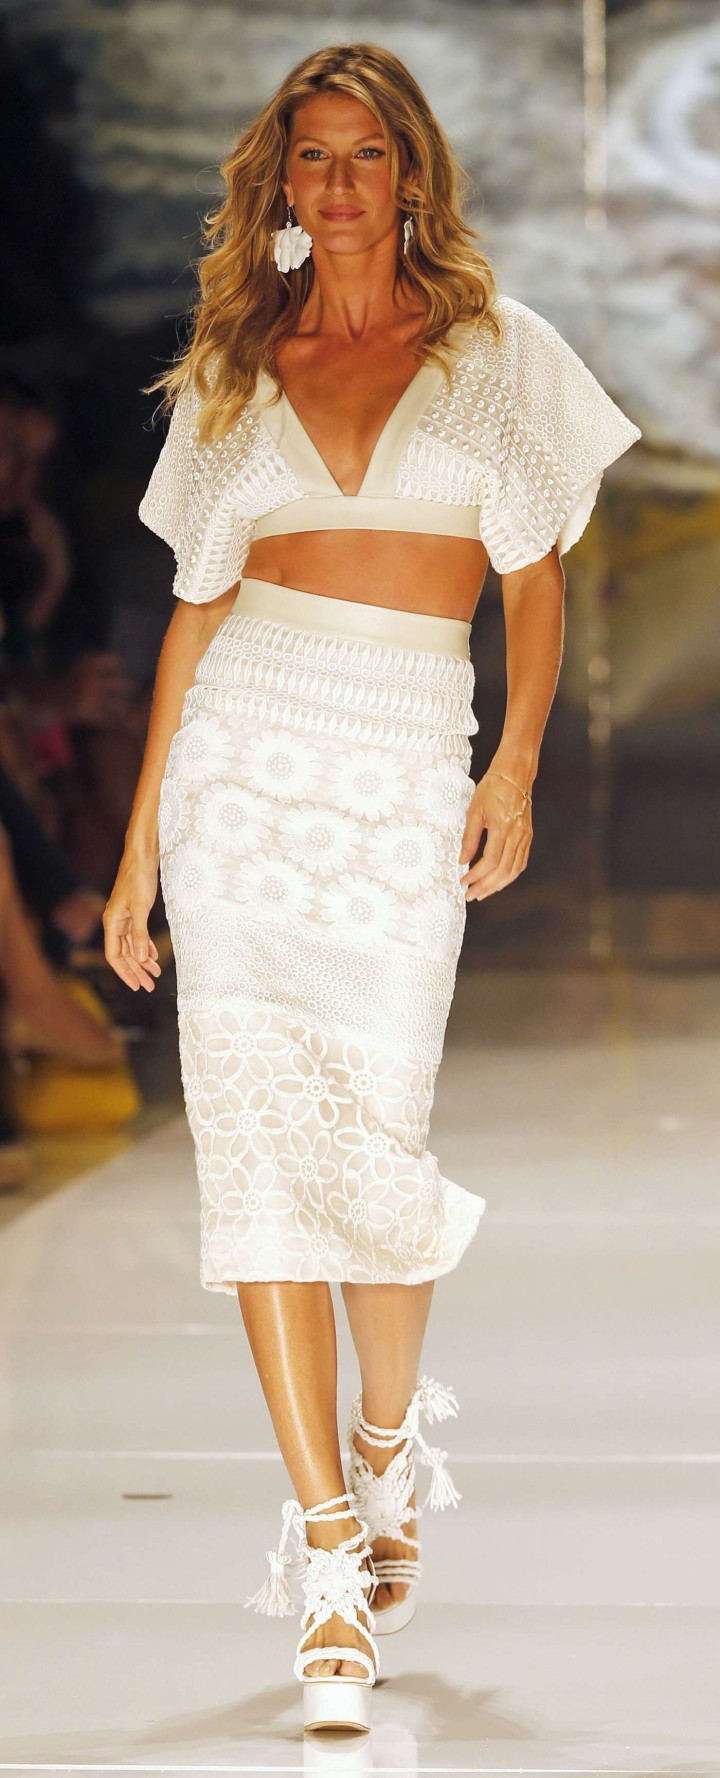 Gisele Bundchen: Catwalk at Colcci Summer 2015 Fashion Show -16